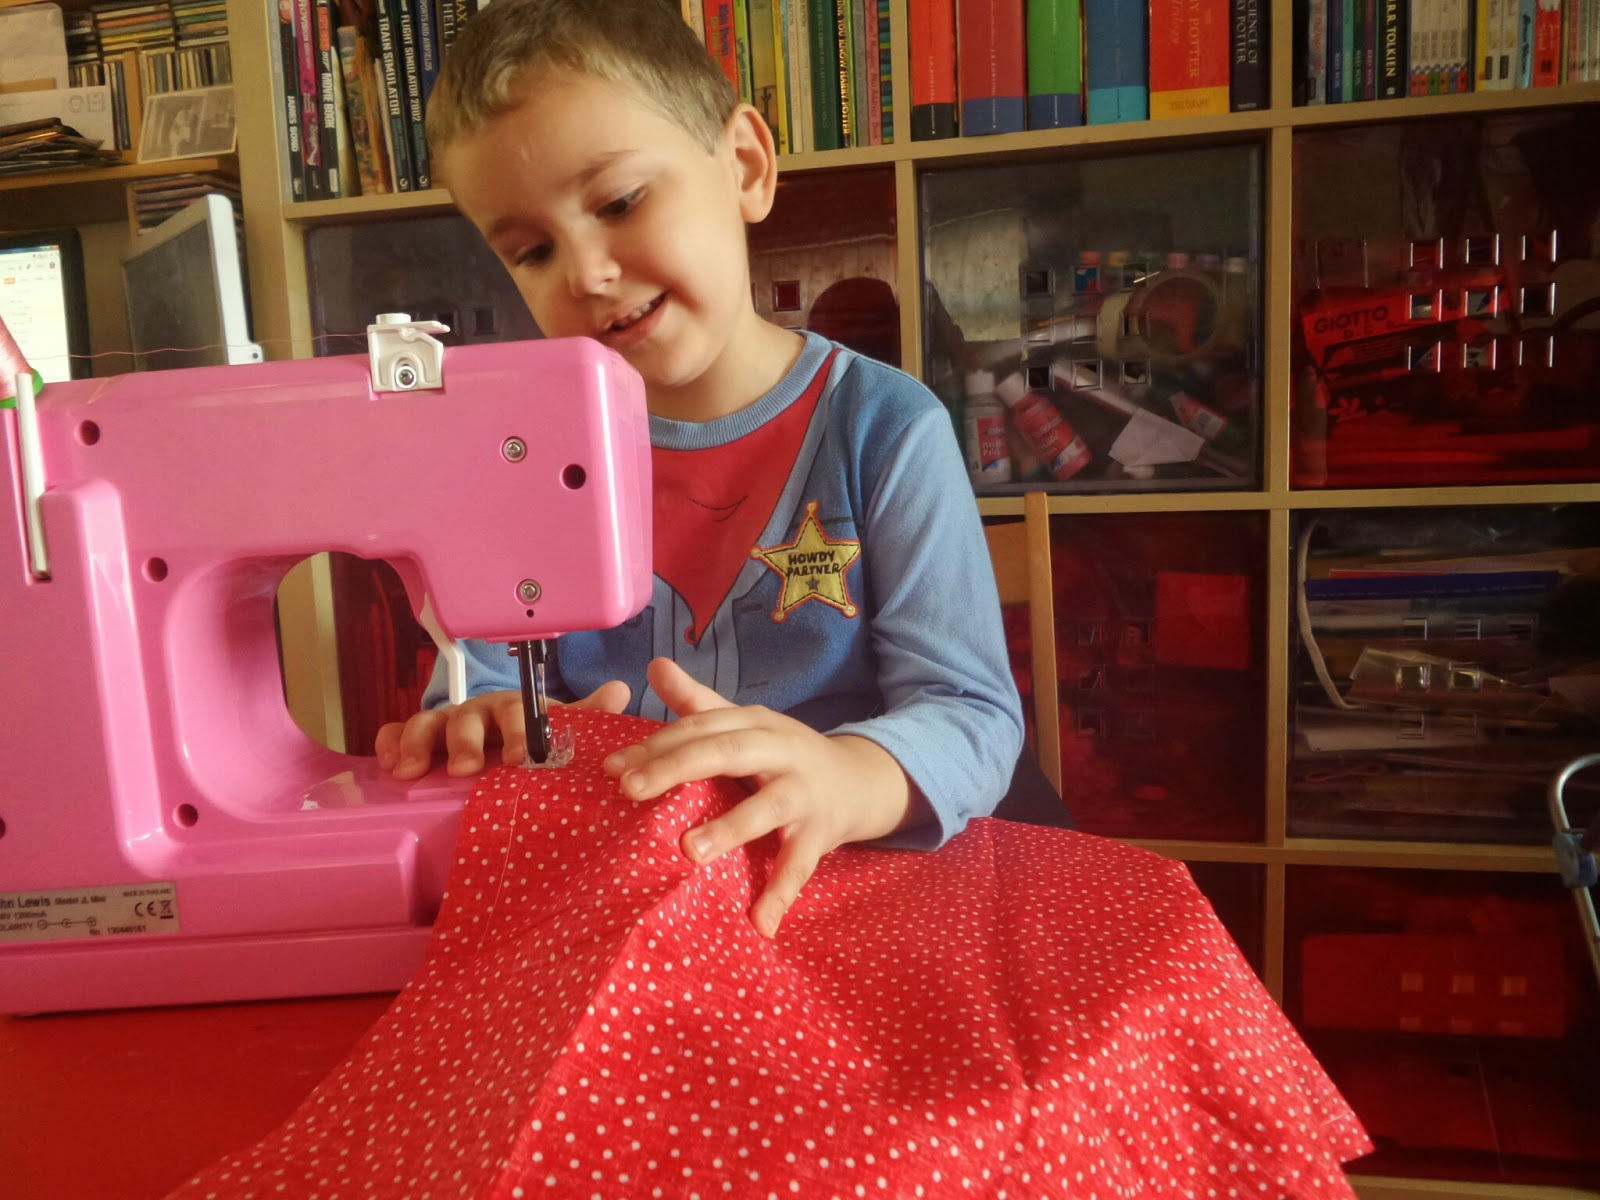 Big Boy happy with his sewing on the sewing machine